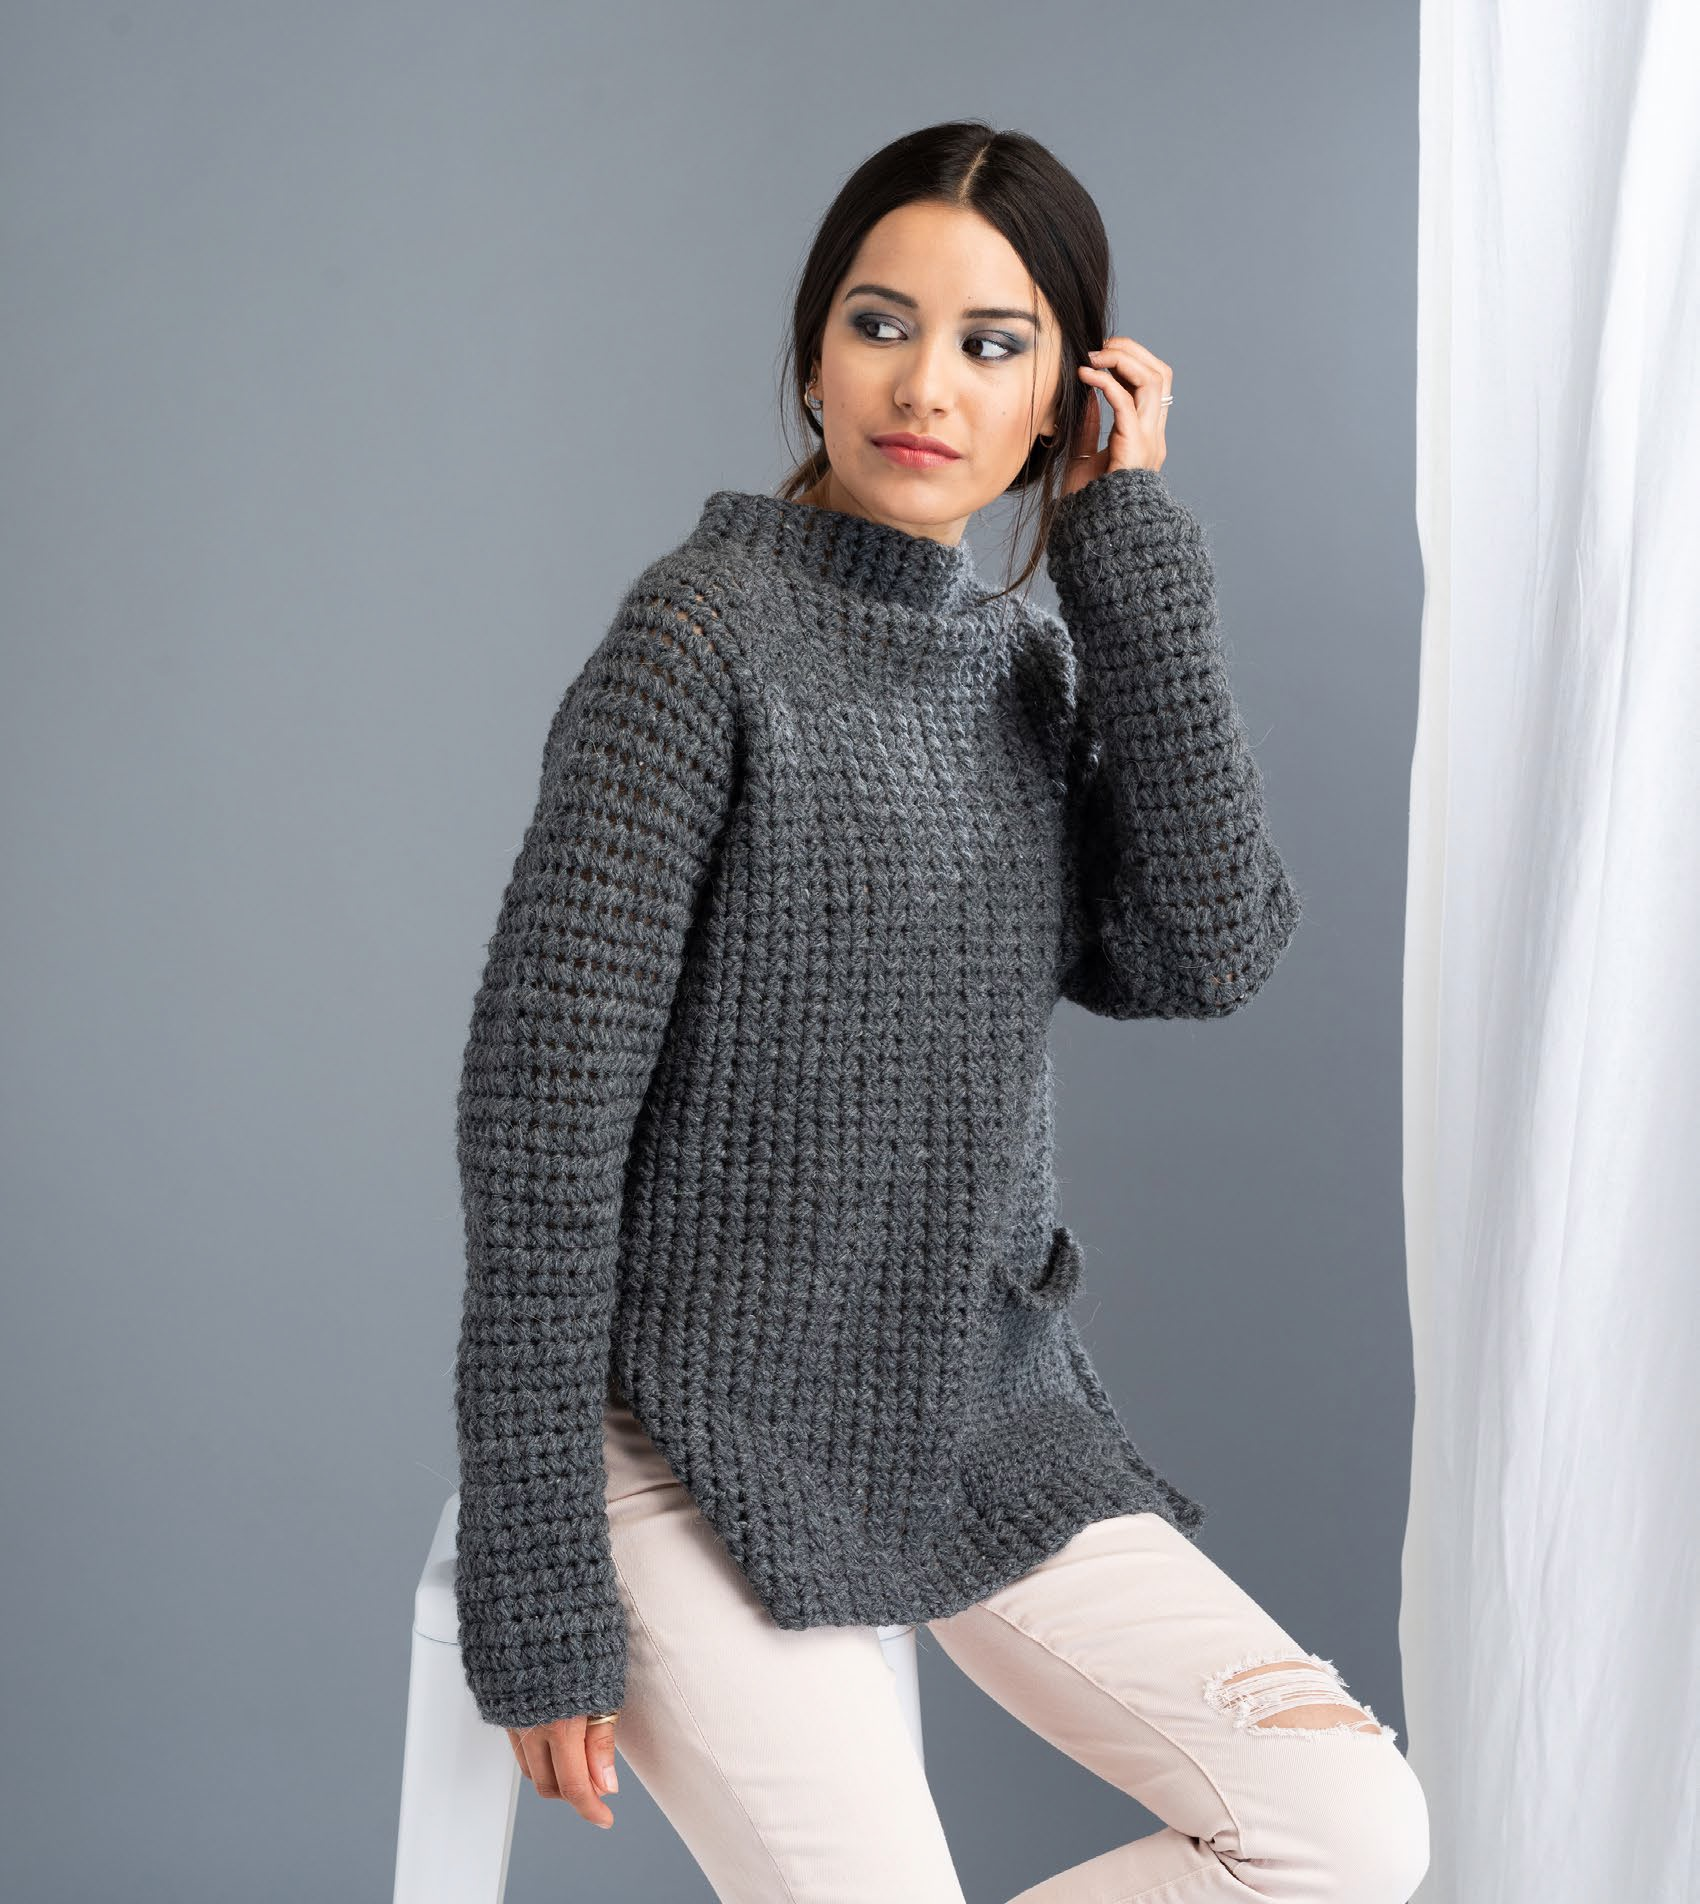 Fullerene Pullover by Jane Howorth from The Crochetist 2019 digital pattern collection